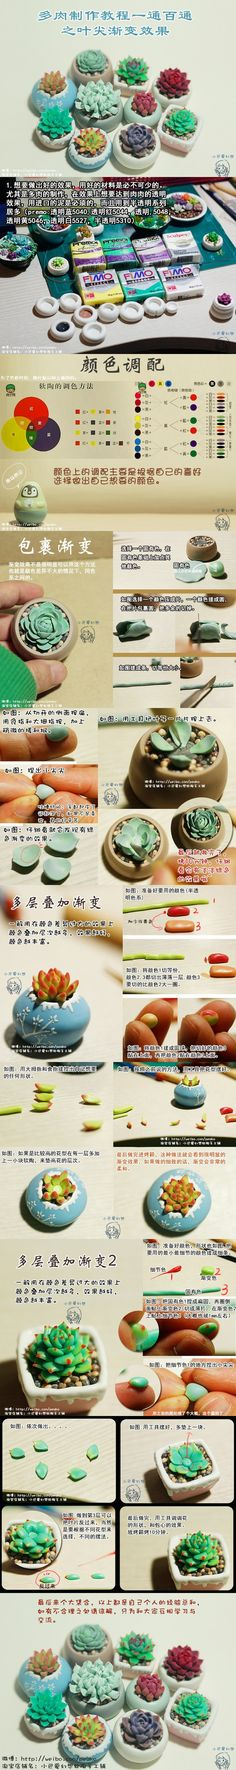 Succulent pots how to